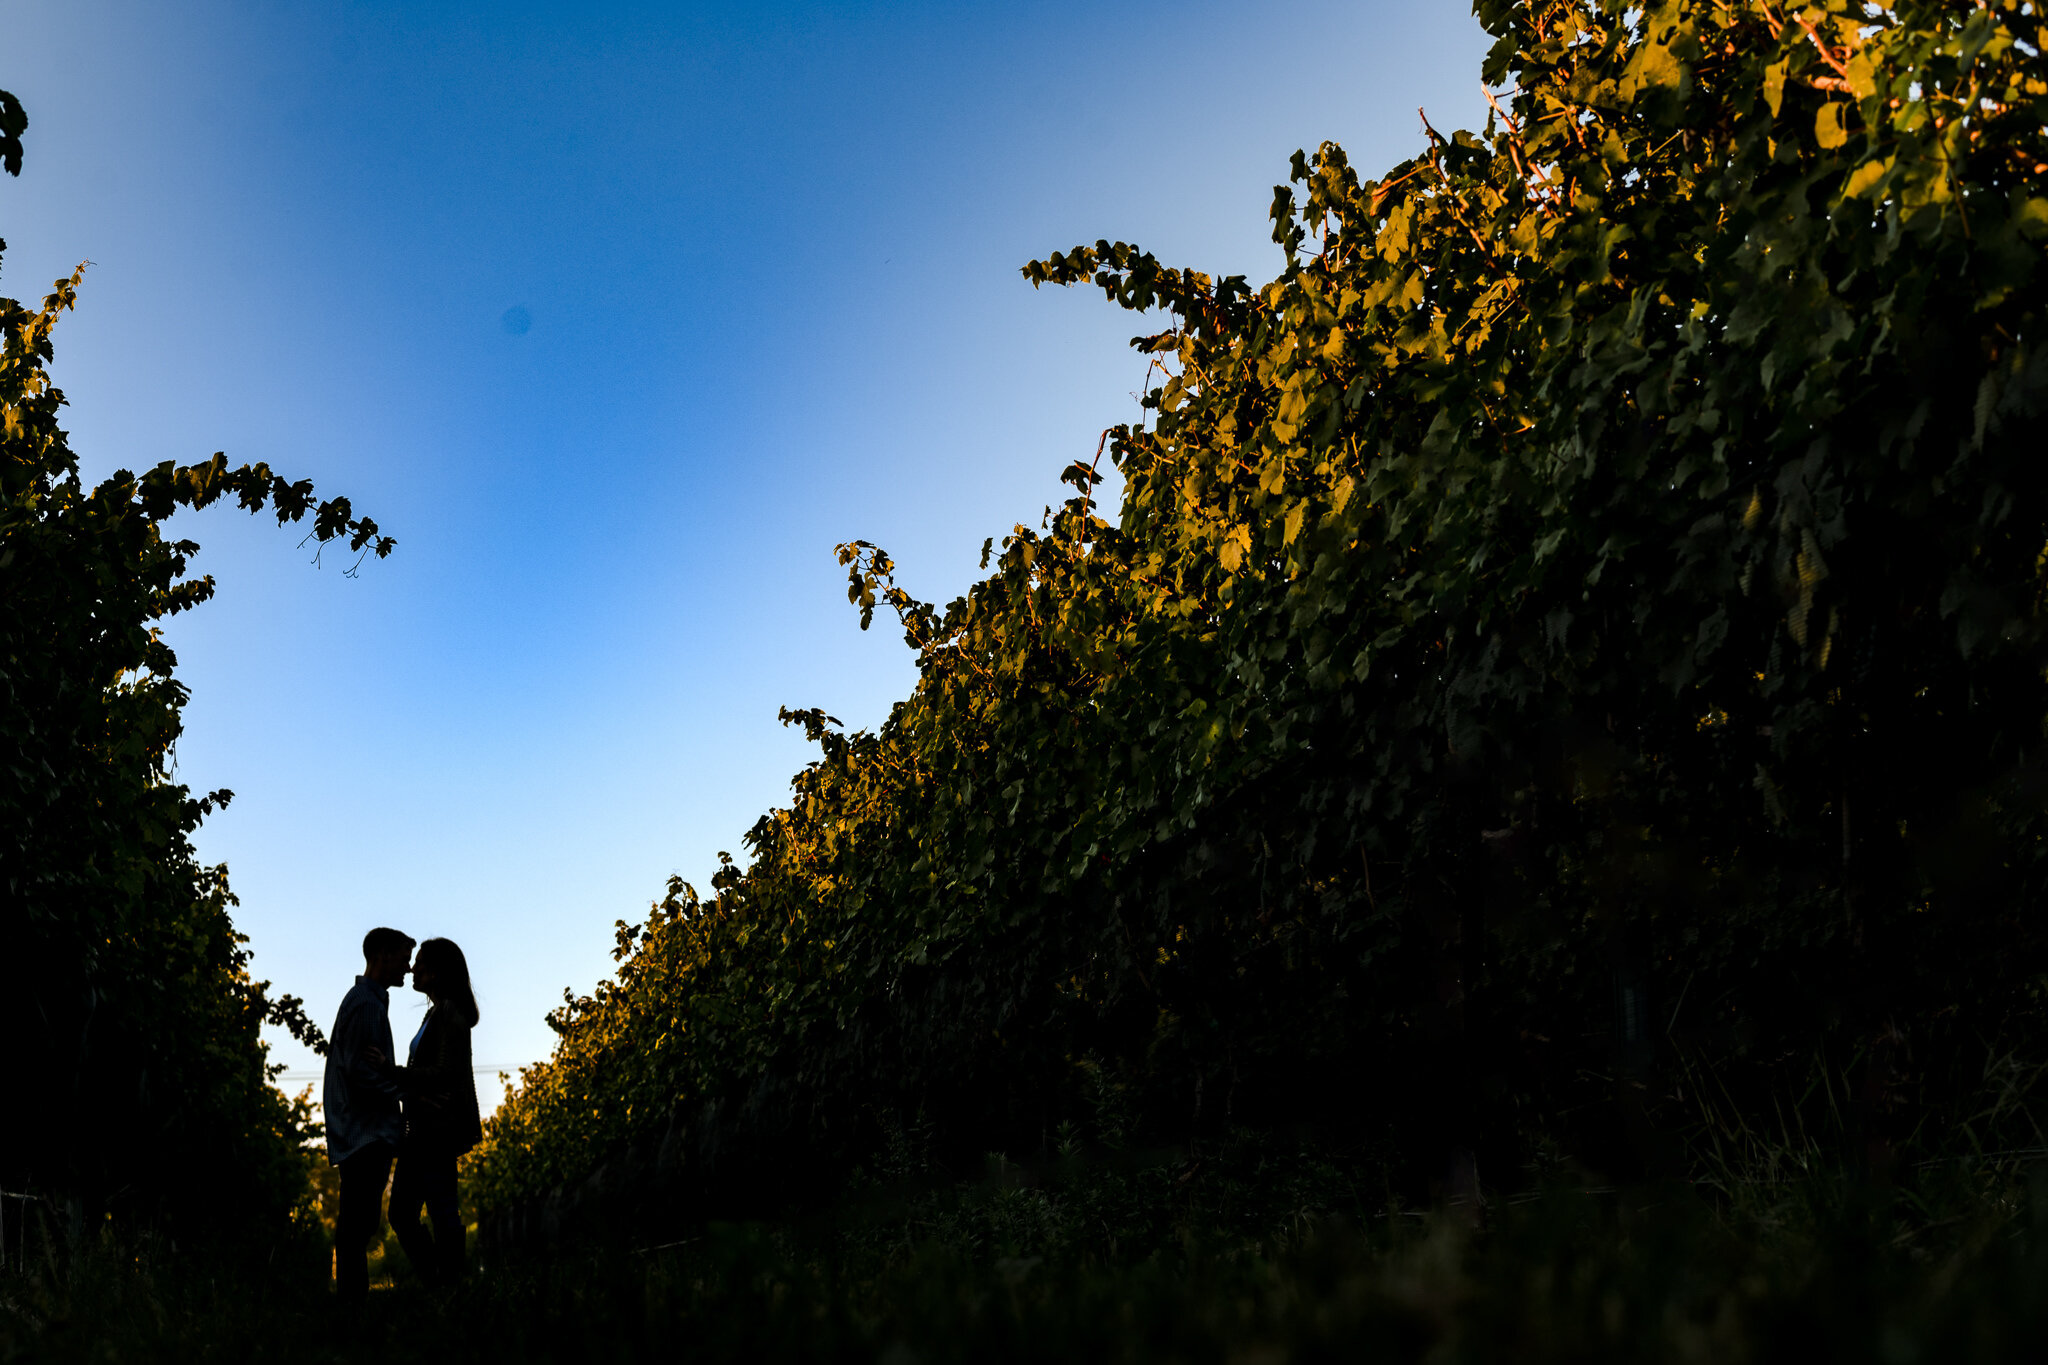 Carlin-White-Horse-Winery-Engagement-Photos-12.JPG